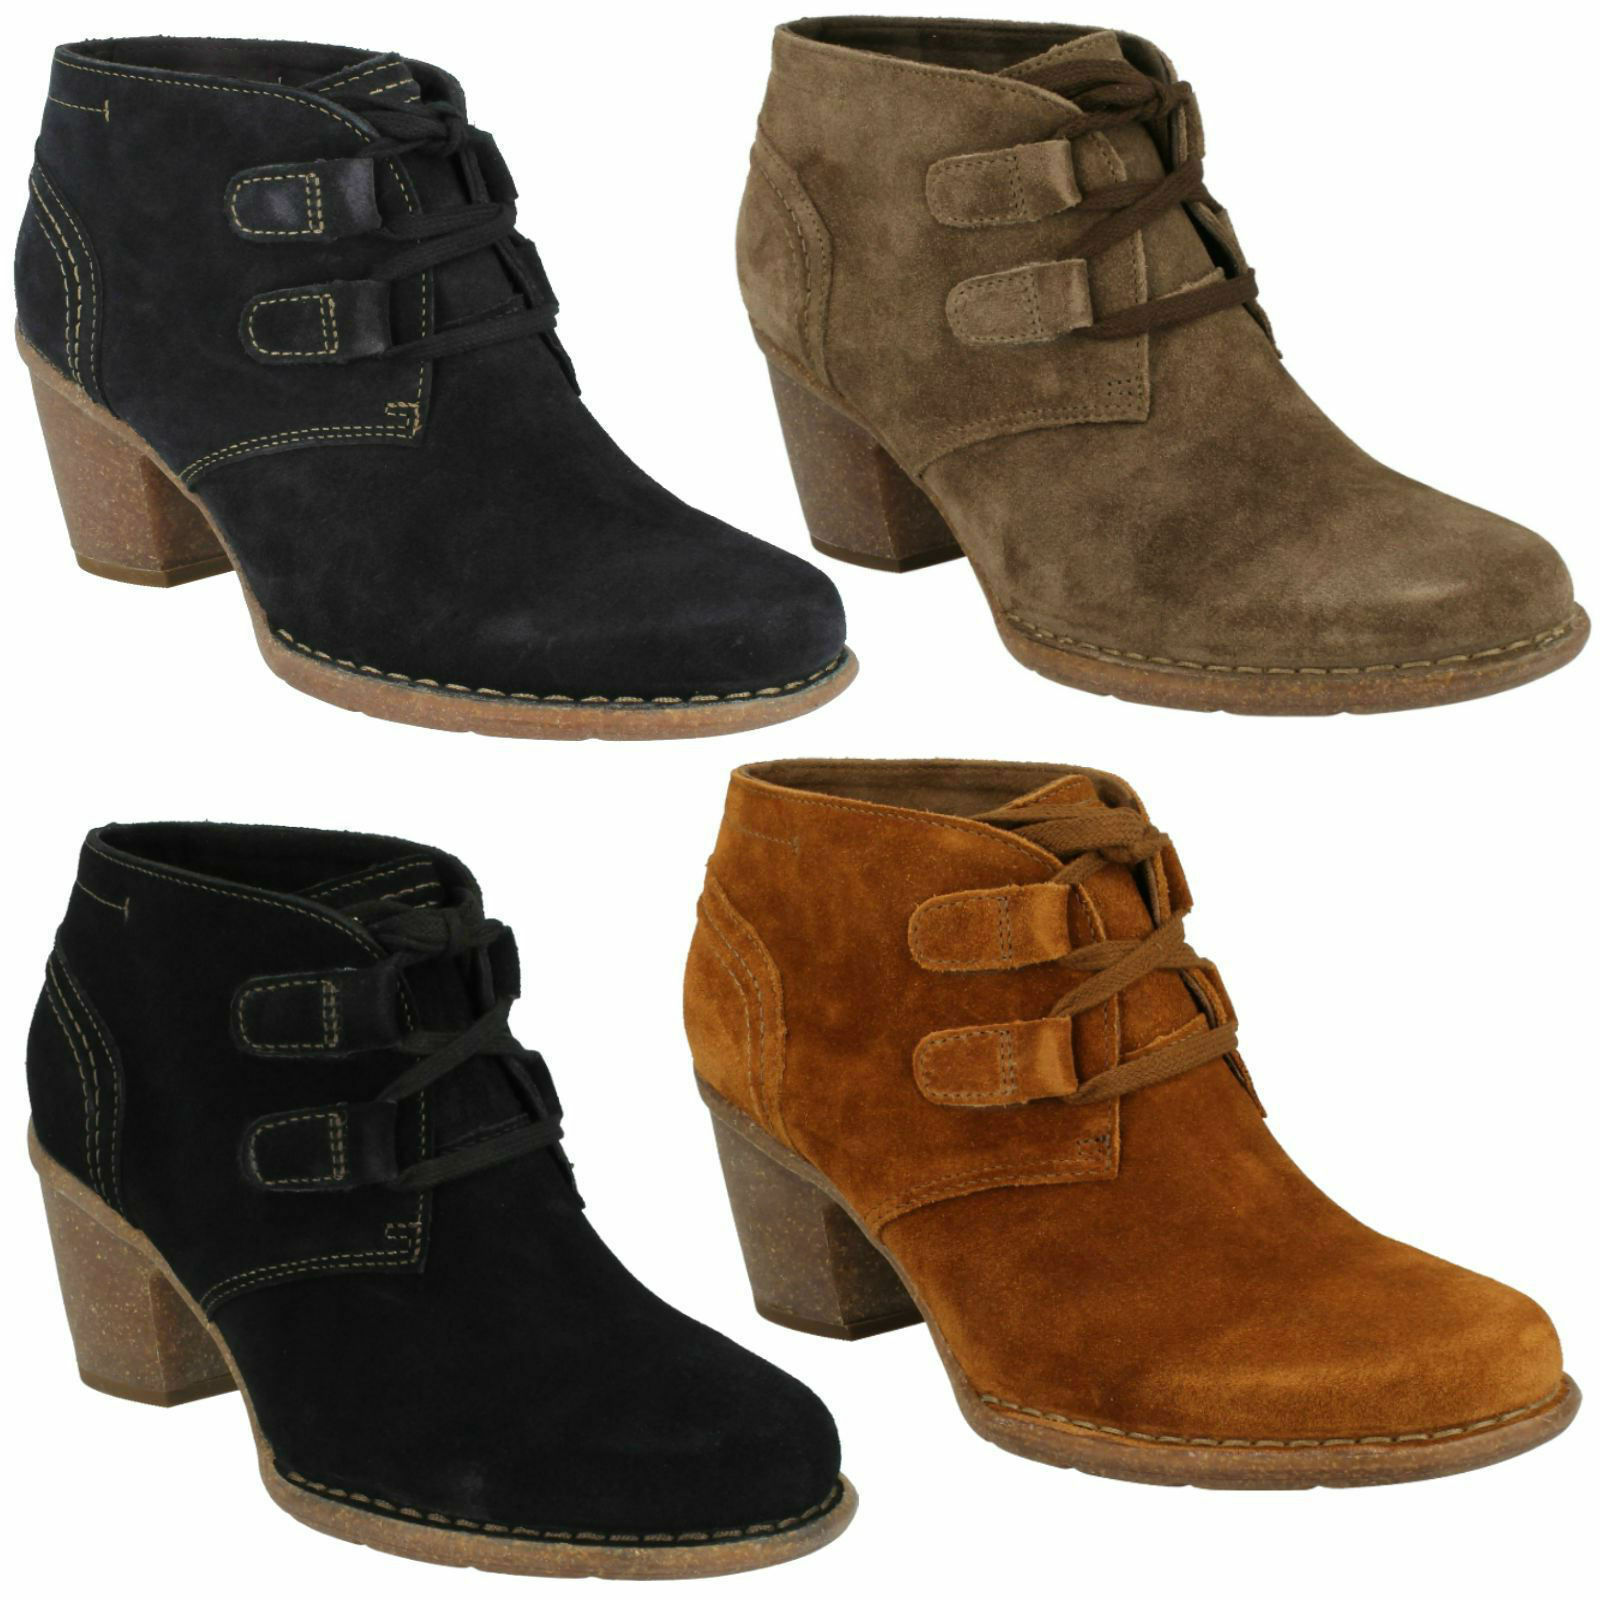 CARLETA LYON LADIES CLARKS SUEDE LACE UP HIGH HEEL CASUAL Schuhe WINTER BOOTS